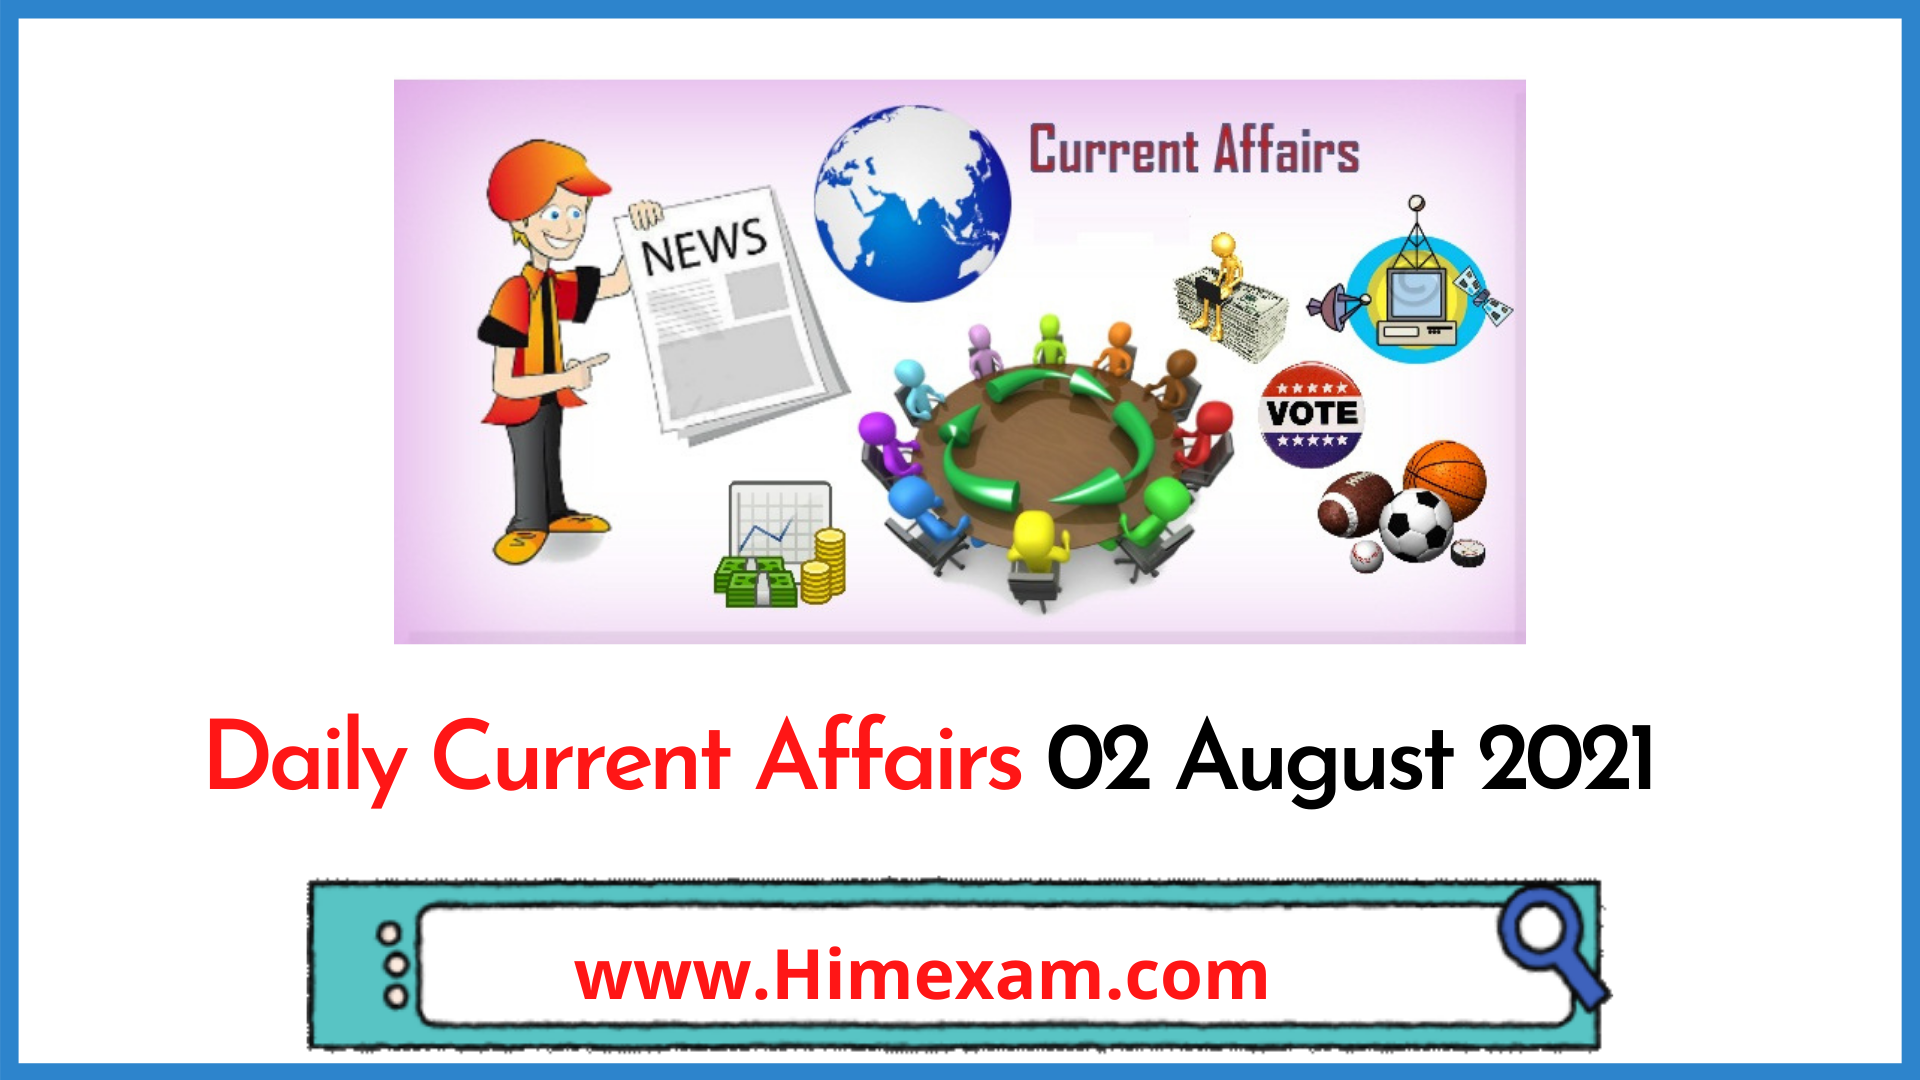 Daily Current Affairs 02 August 2021